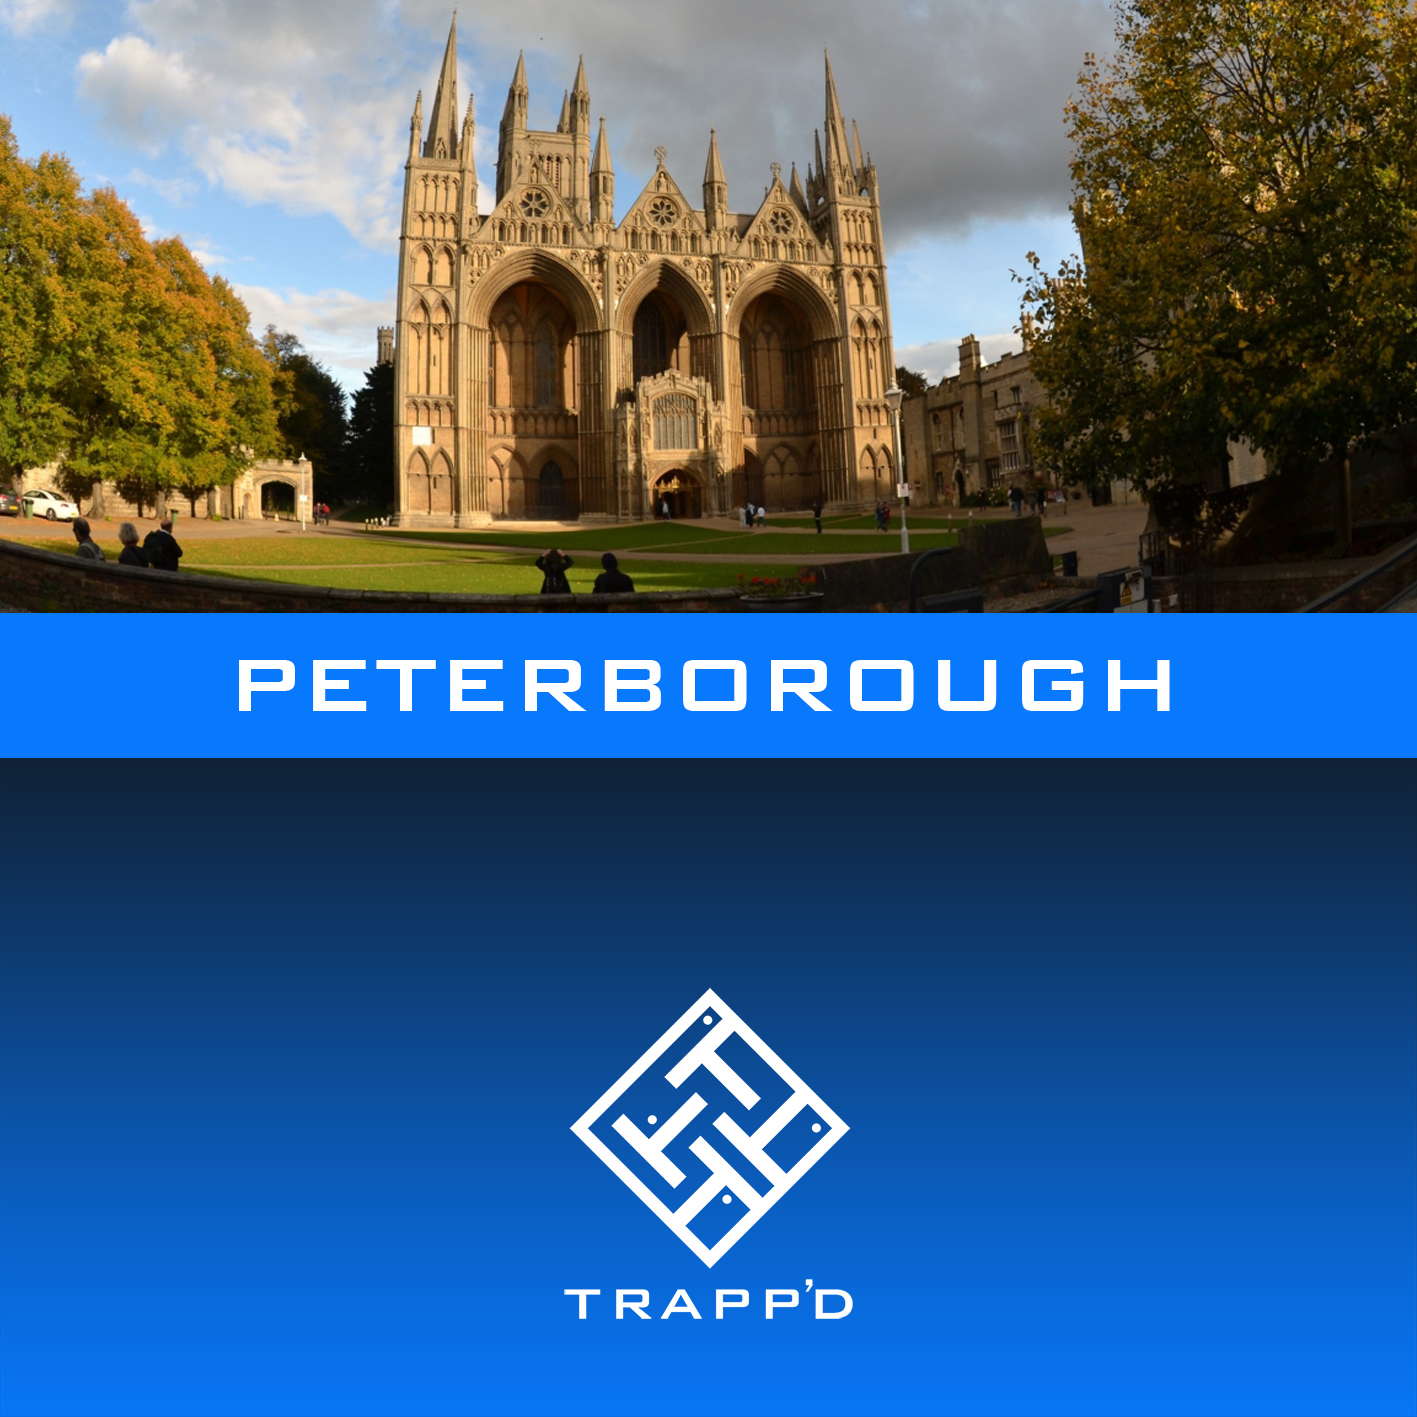 Trappd Peterborough